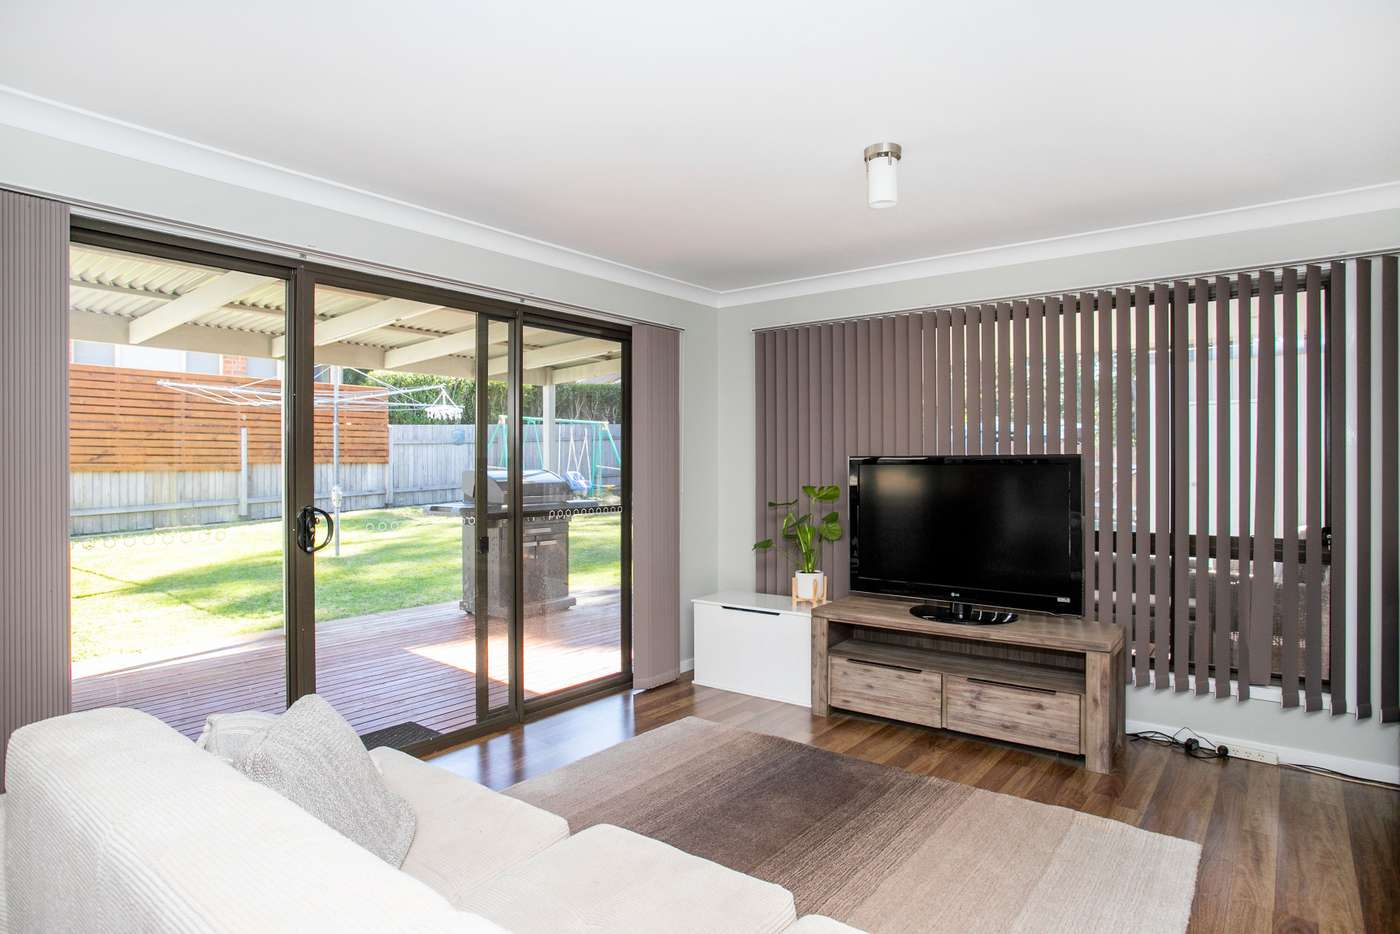 Sixth view of Homely house listing, 44 Clyde Street, Mollymook NSW 2539